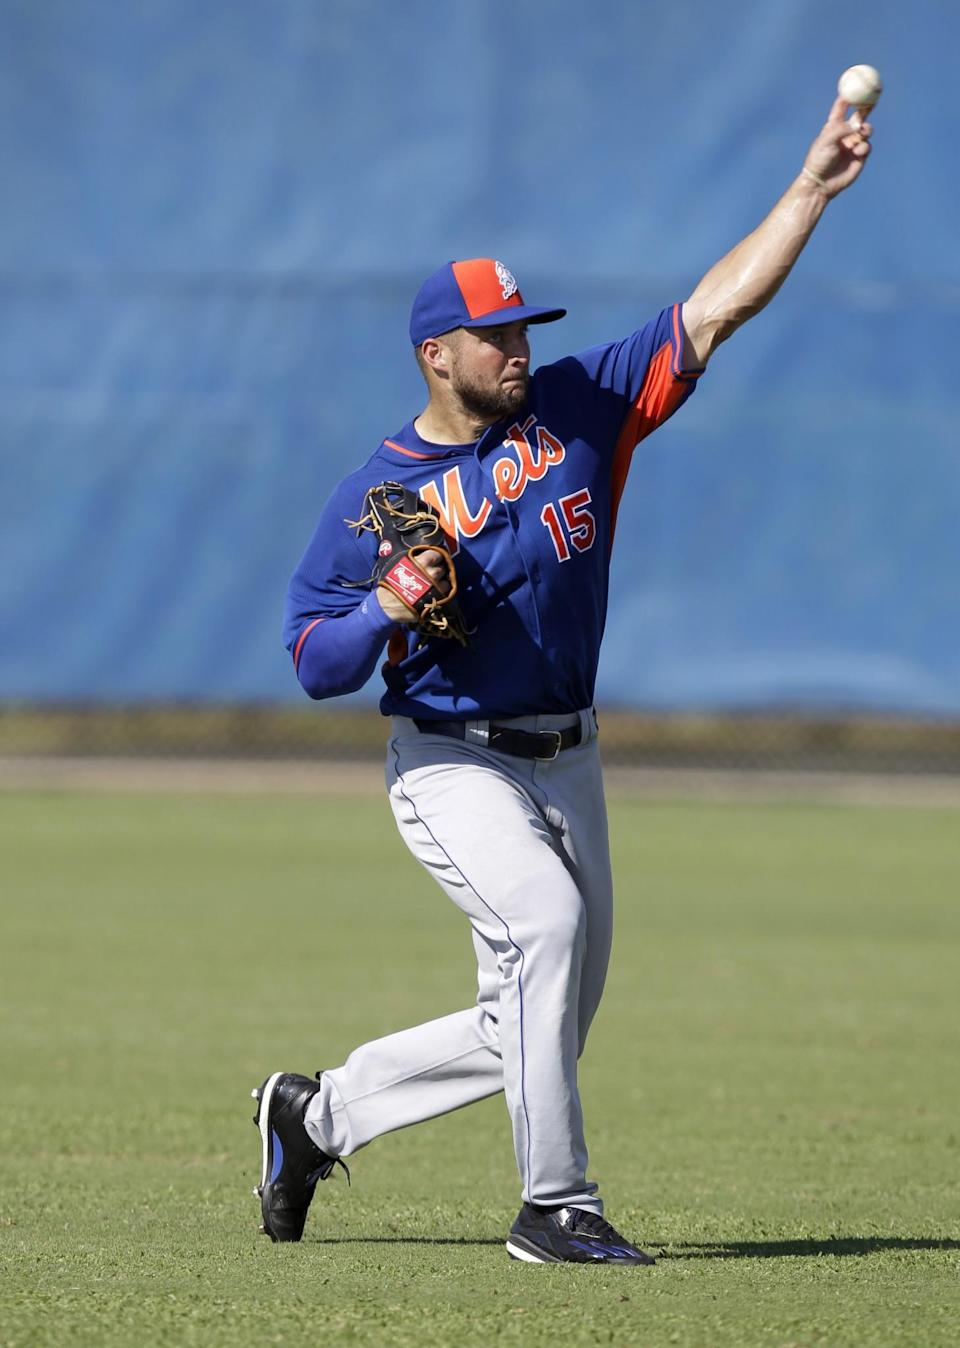 <p>Tim Tebow throws the ball during practice before his first instructional league baseball game for the New York Mets against the St. Louis Cardinals instructional club Wednesday, Sept. 28, 2016, in Port St. Lucie, Fla. (AP Photo/Luis M. Alvarez) </p>